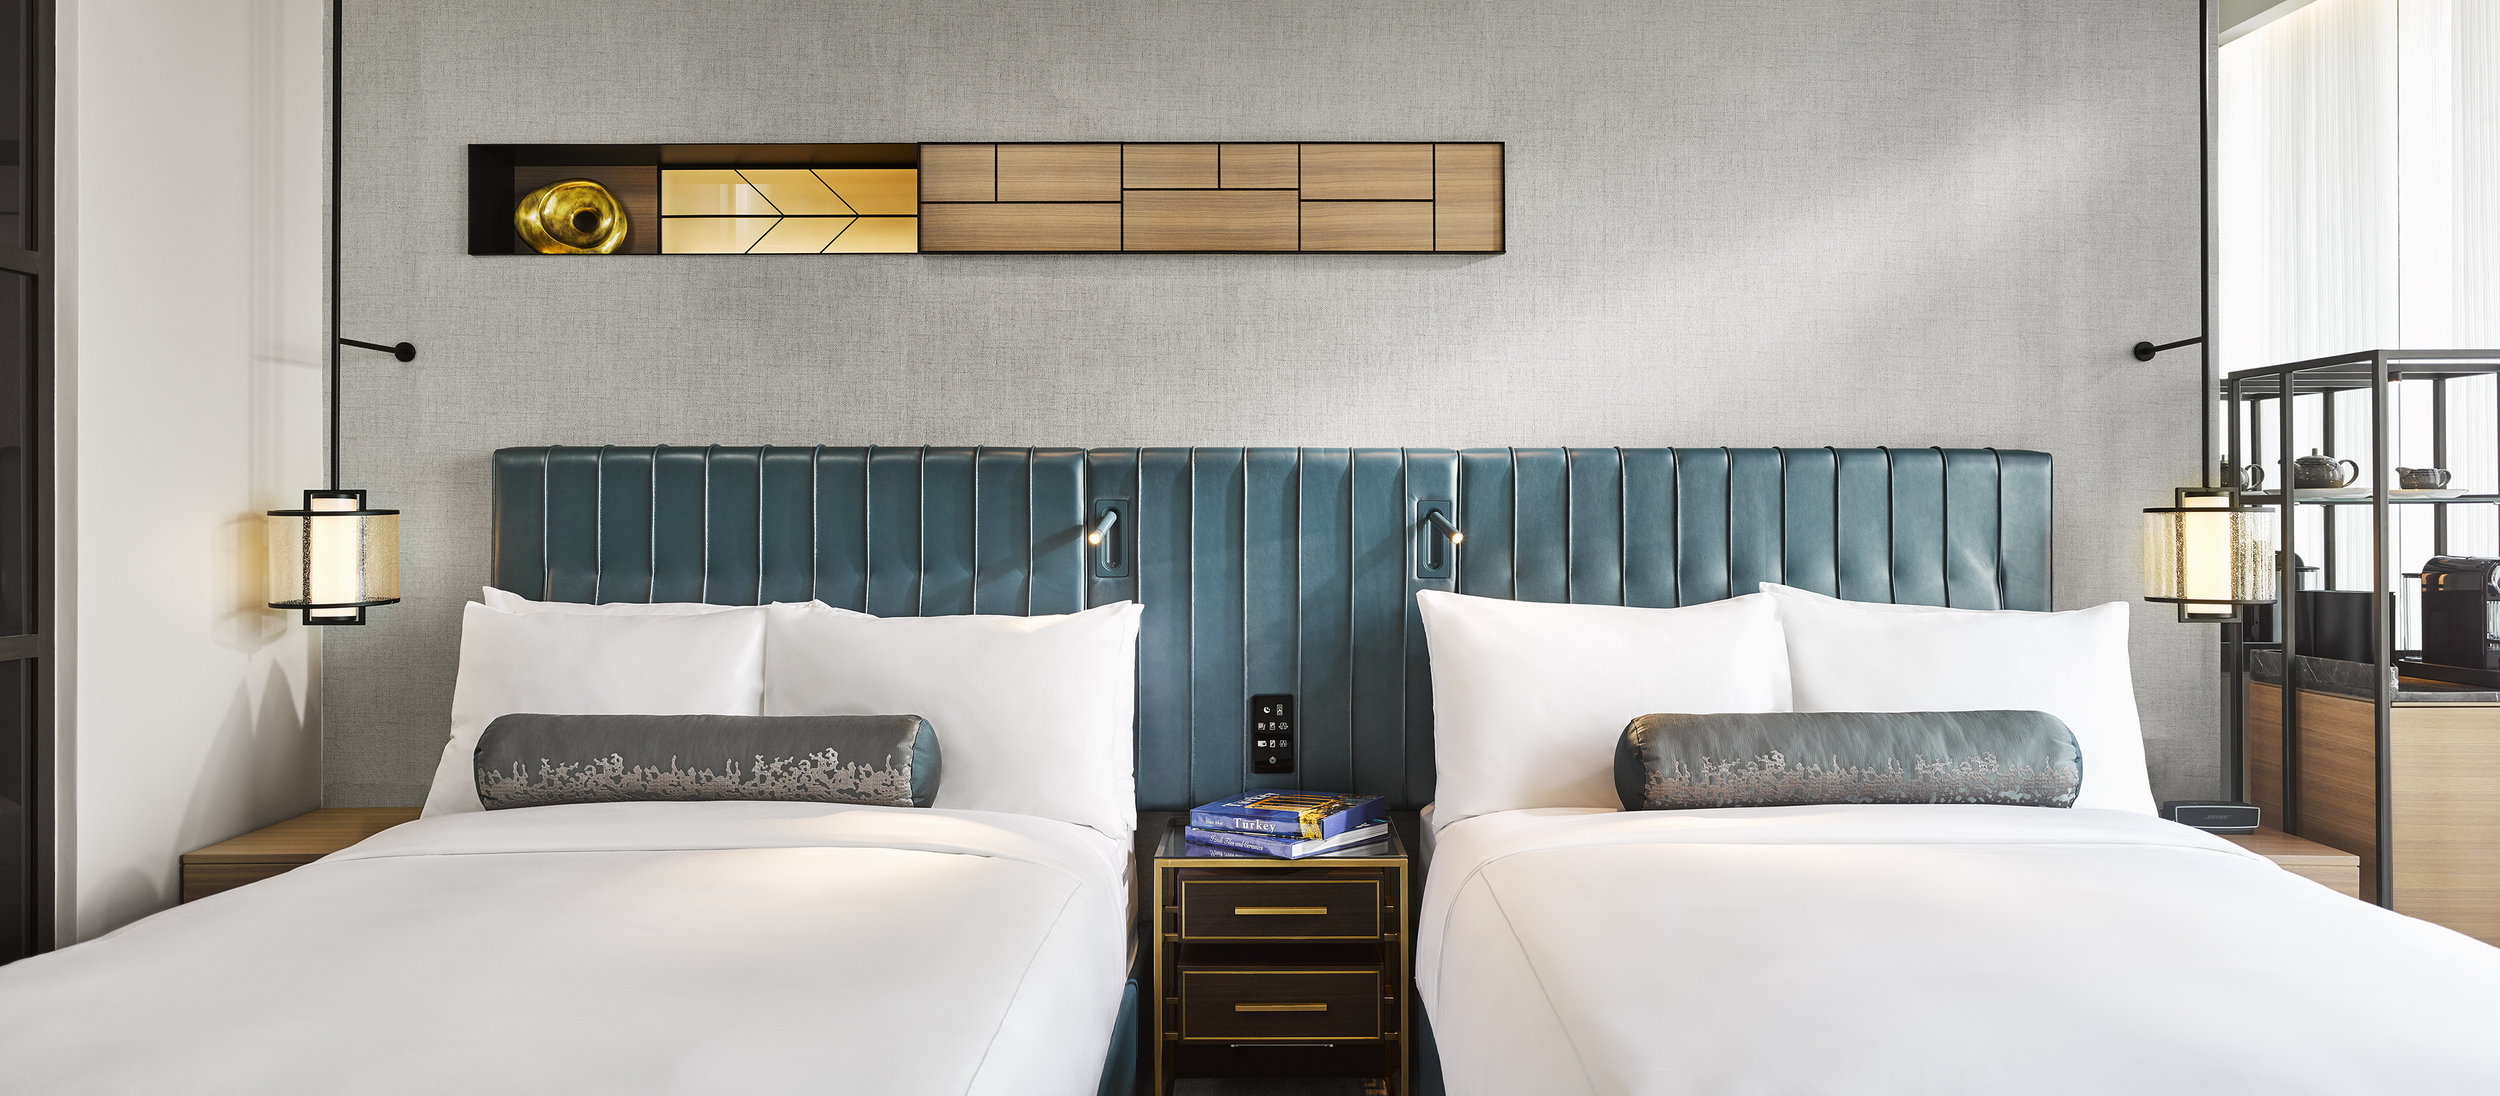 Beds feature blue leather and tufted headboards, inspired by the Bosphorus, and have a custom extruded lumbar support.